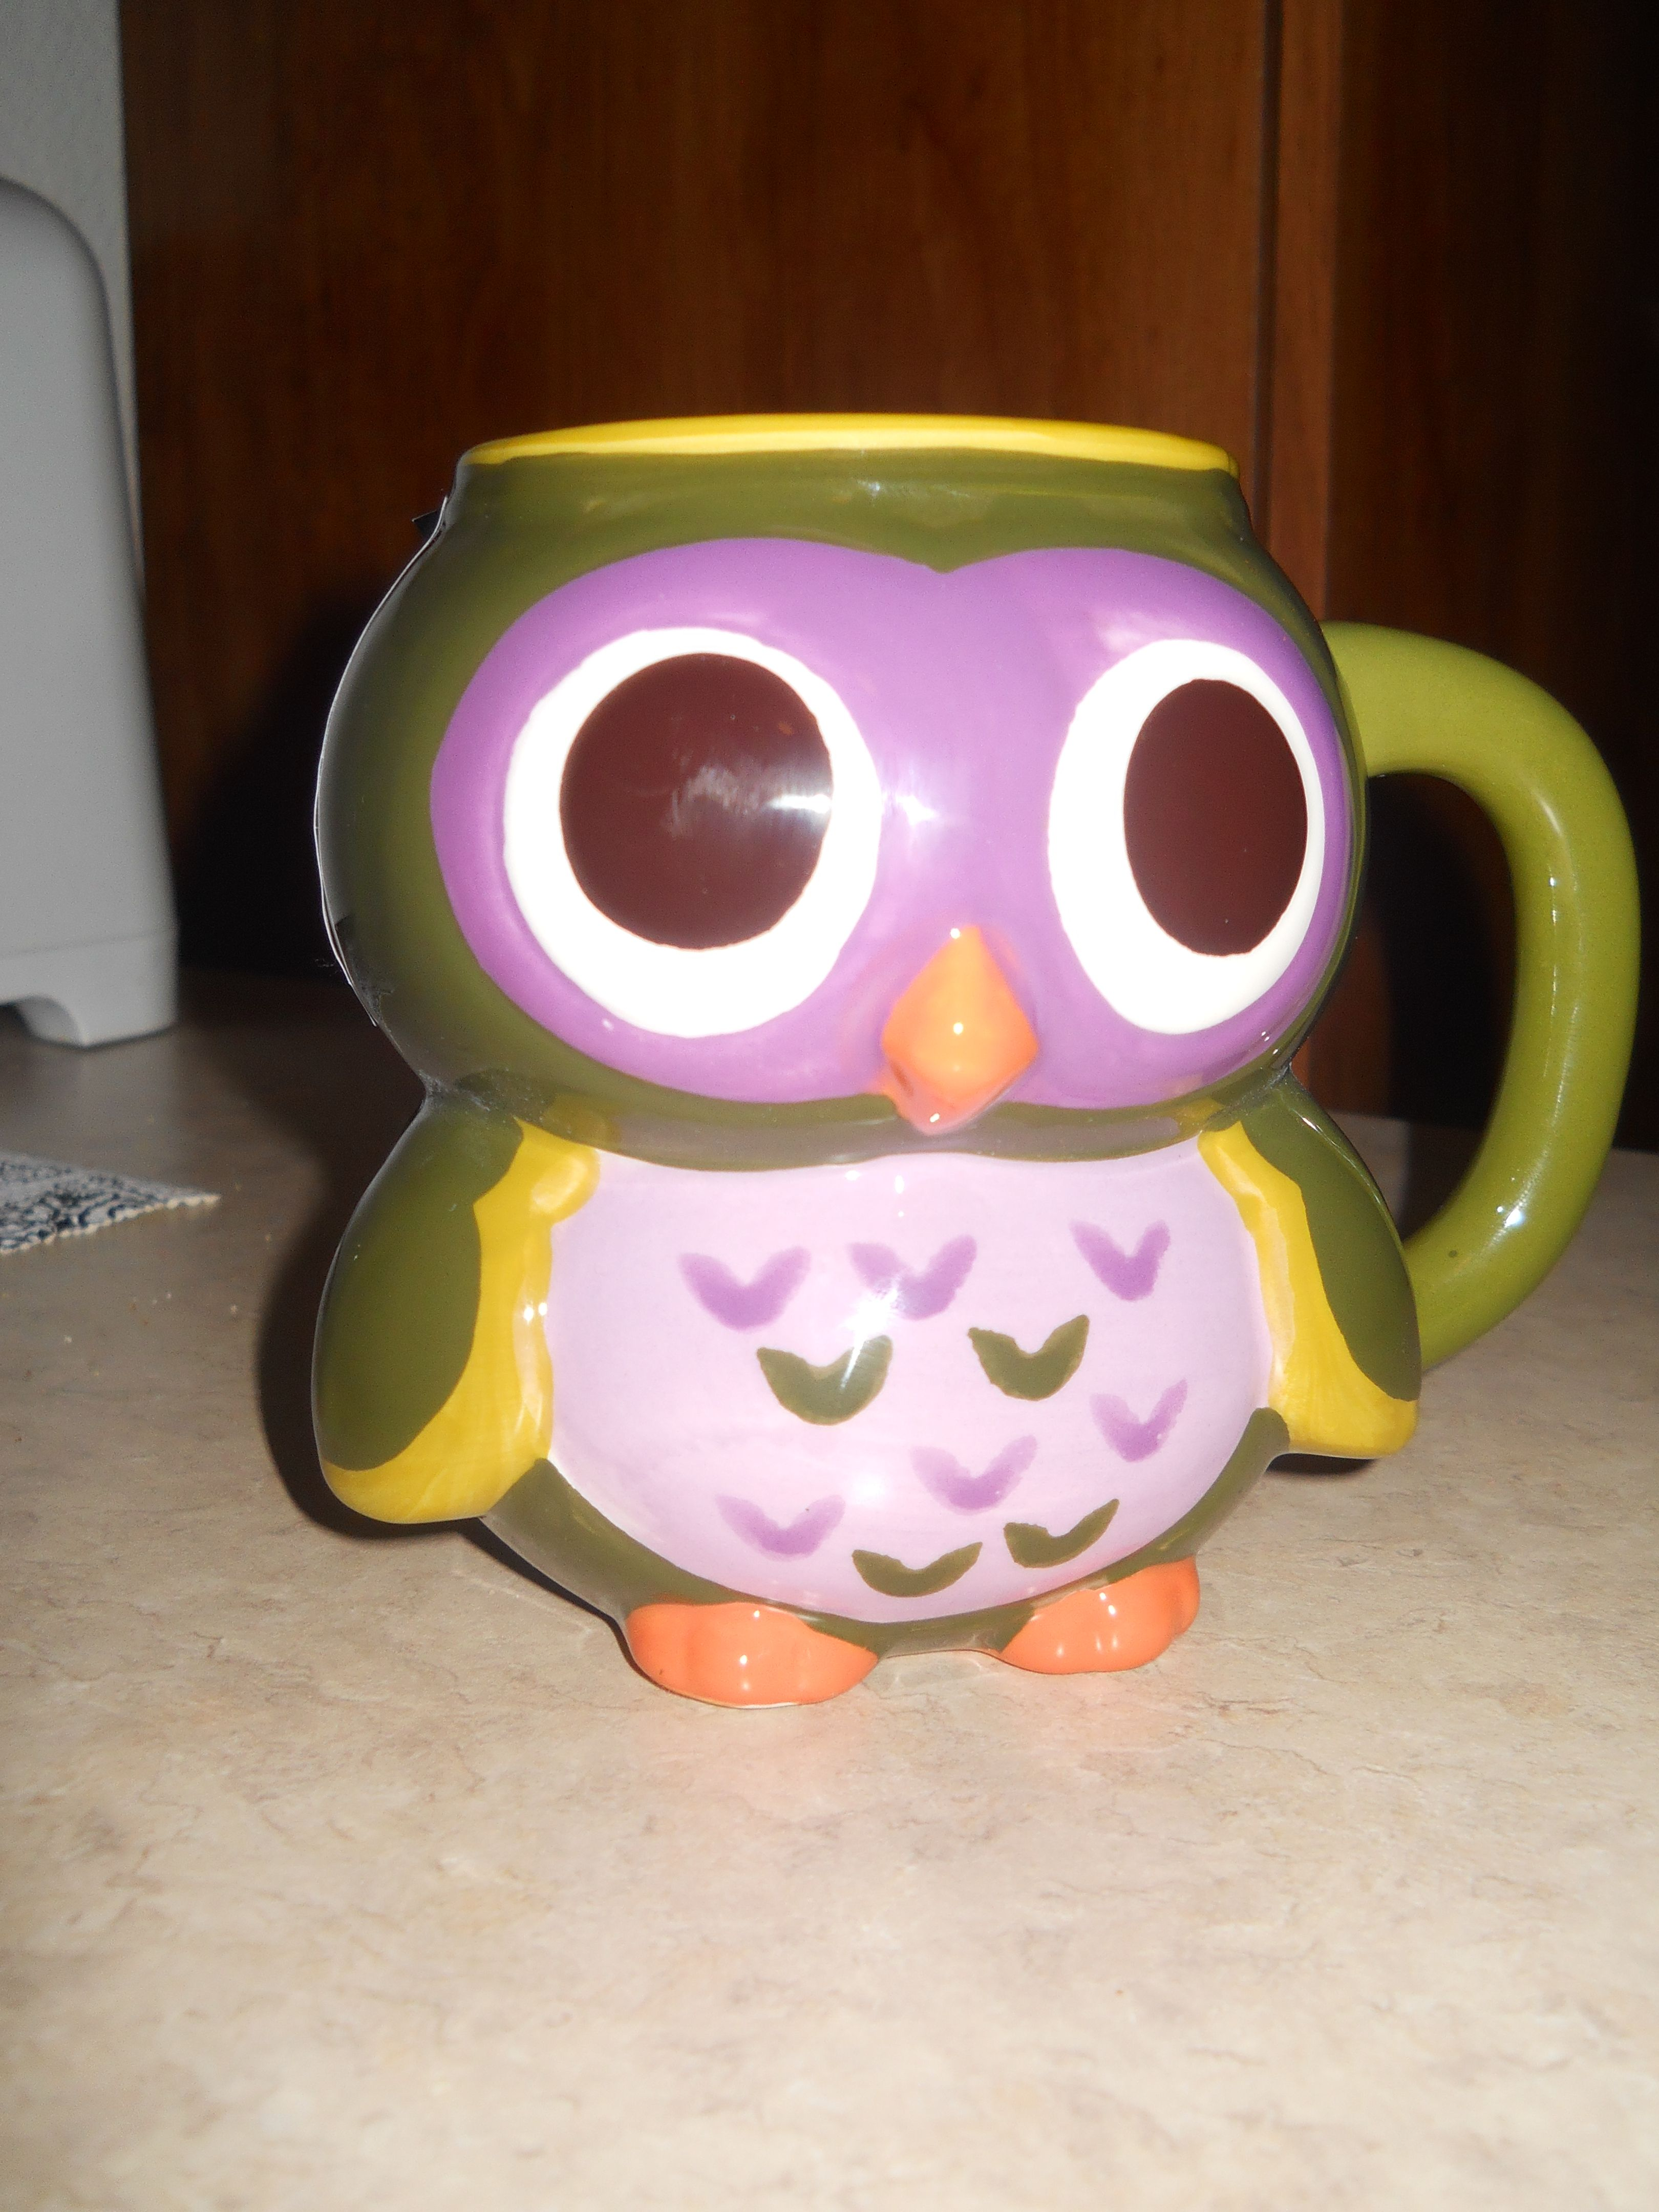 MESA Inspired Living handcrafted owl mug found at Marshalls